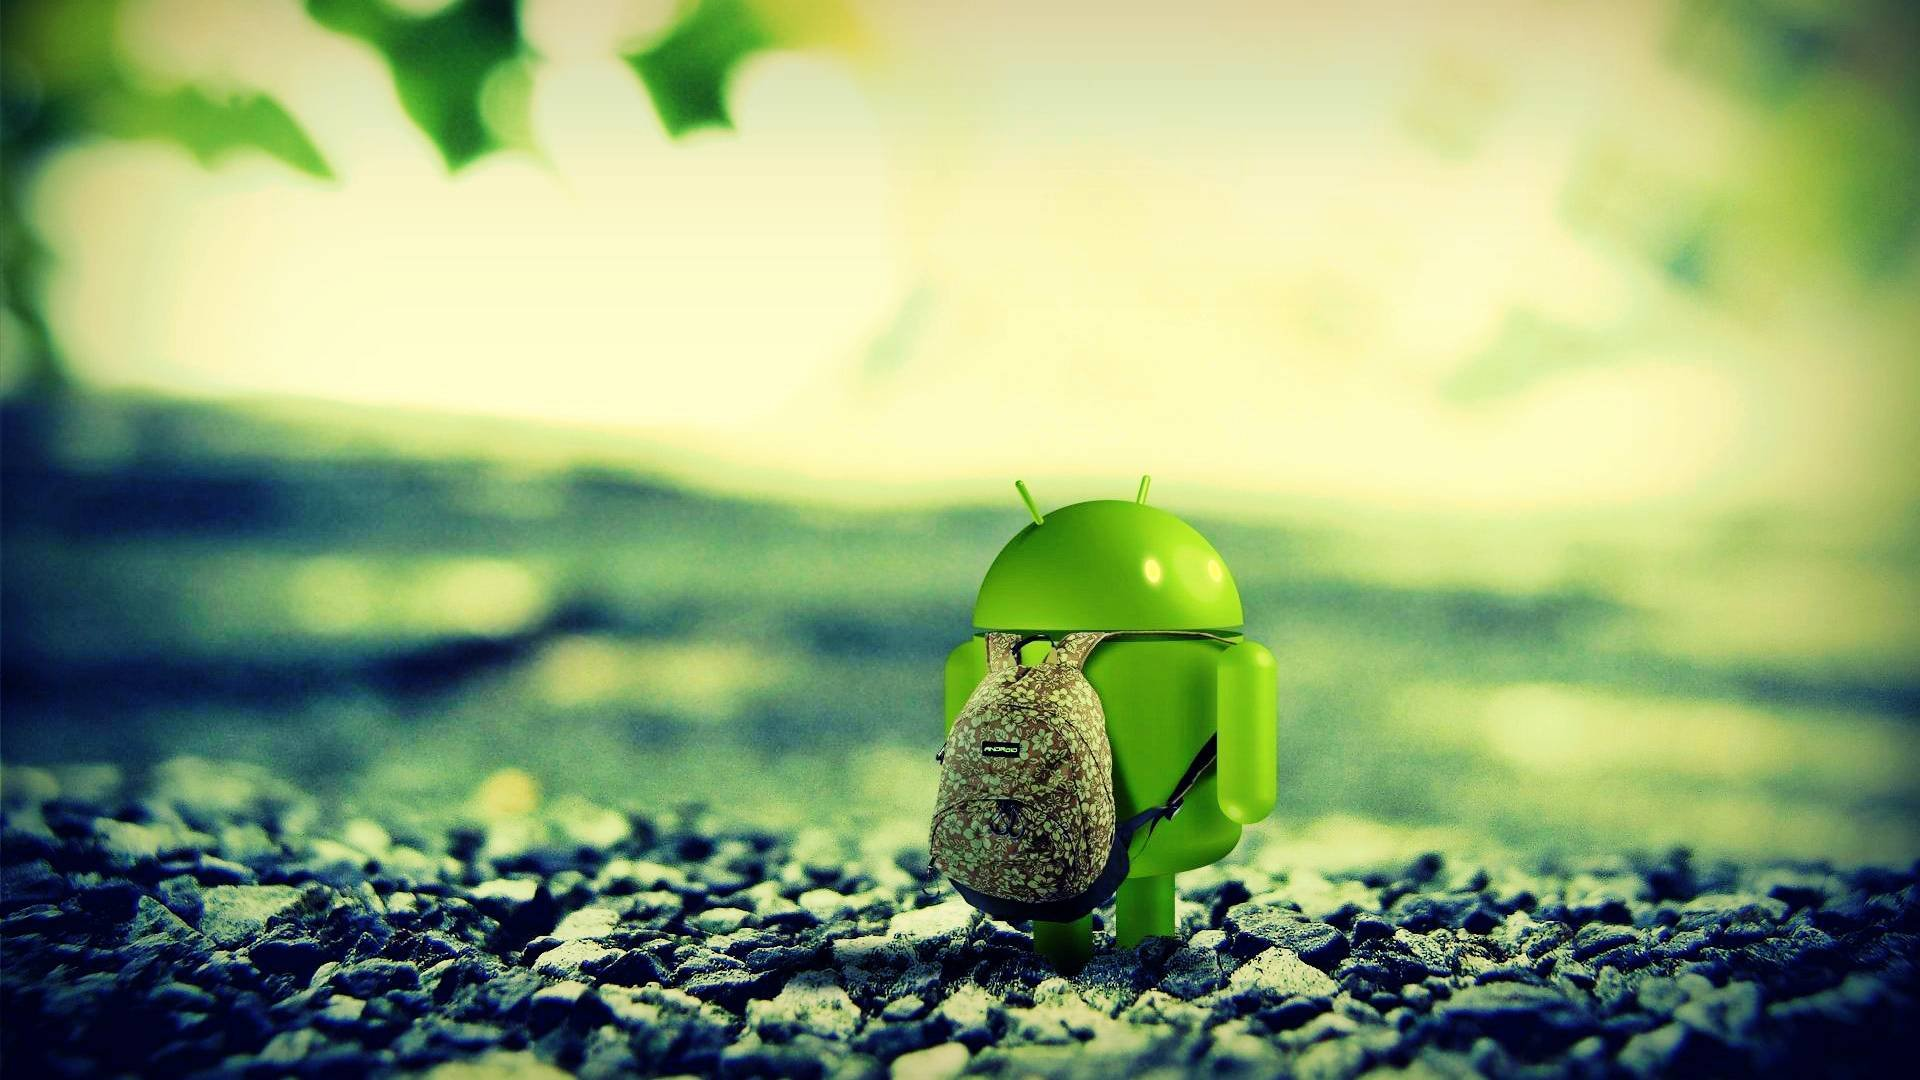 Android Wallpapers Hd For Tablet Simple Image Gallery